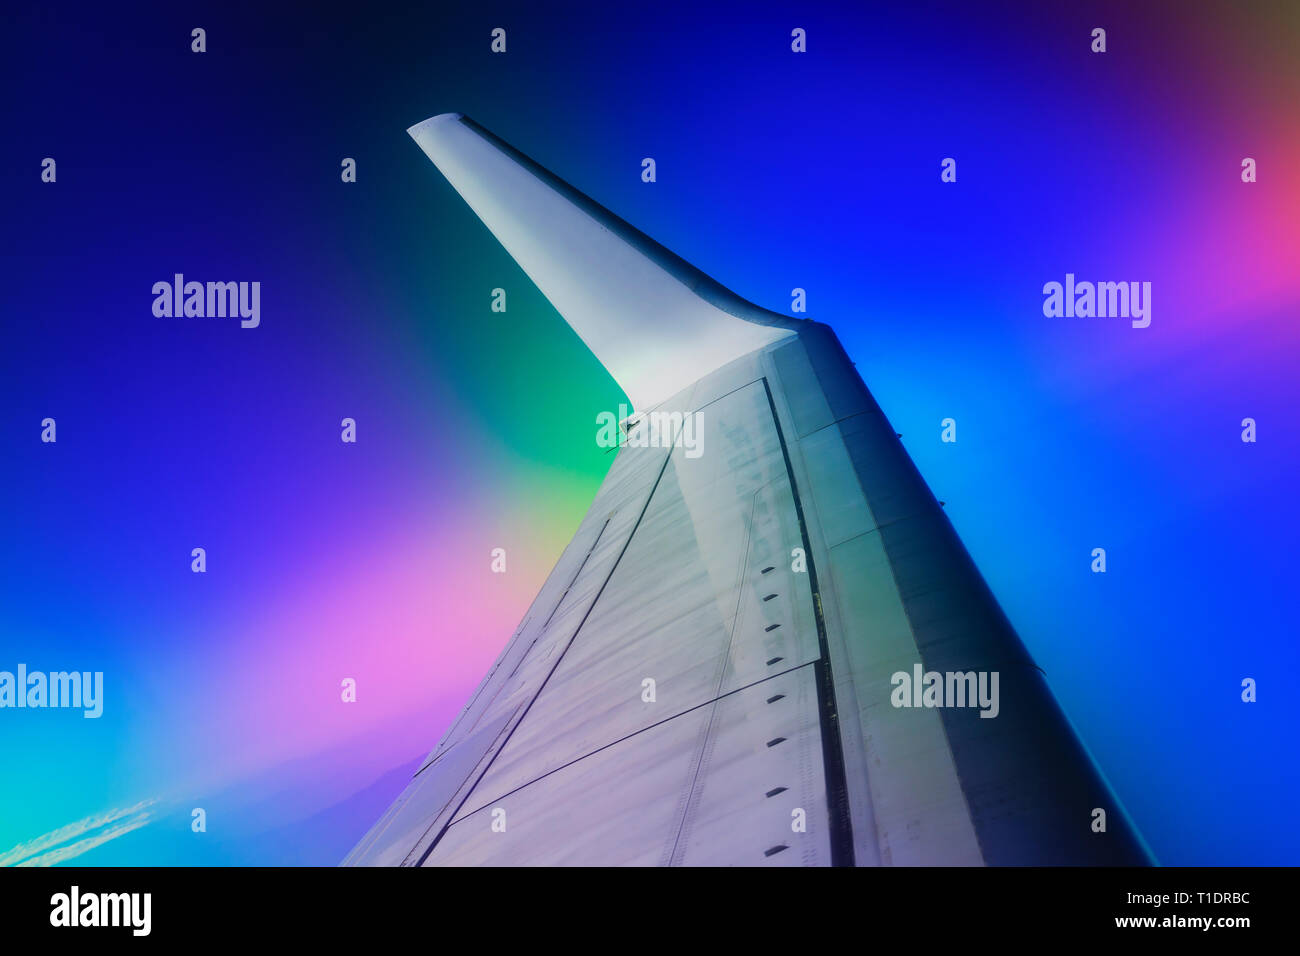 trip, dream fulfillment, goal achievement, Airplane wing, victory, new idea, plan, flight safety, spurts, summer time, hot - Stock Image